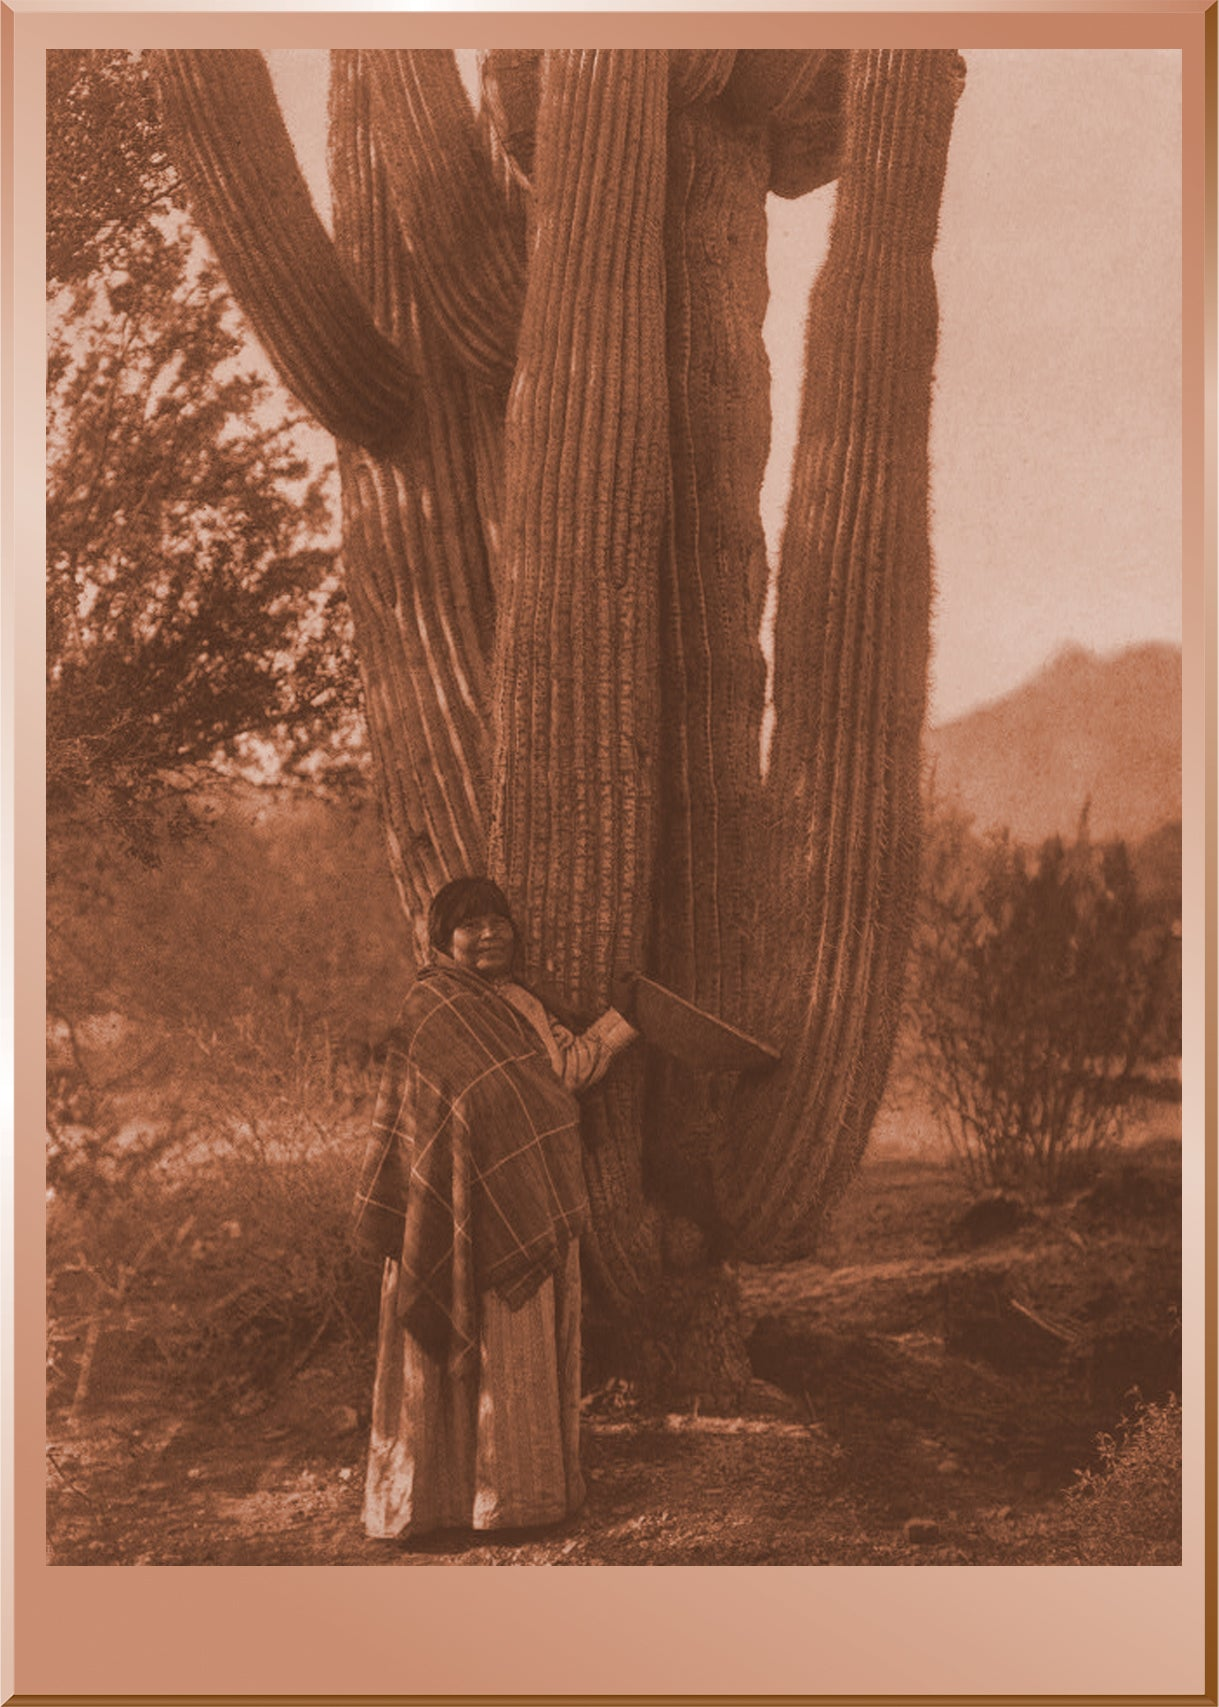 The Pima Woman